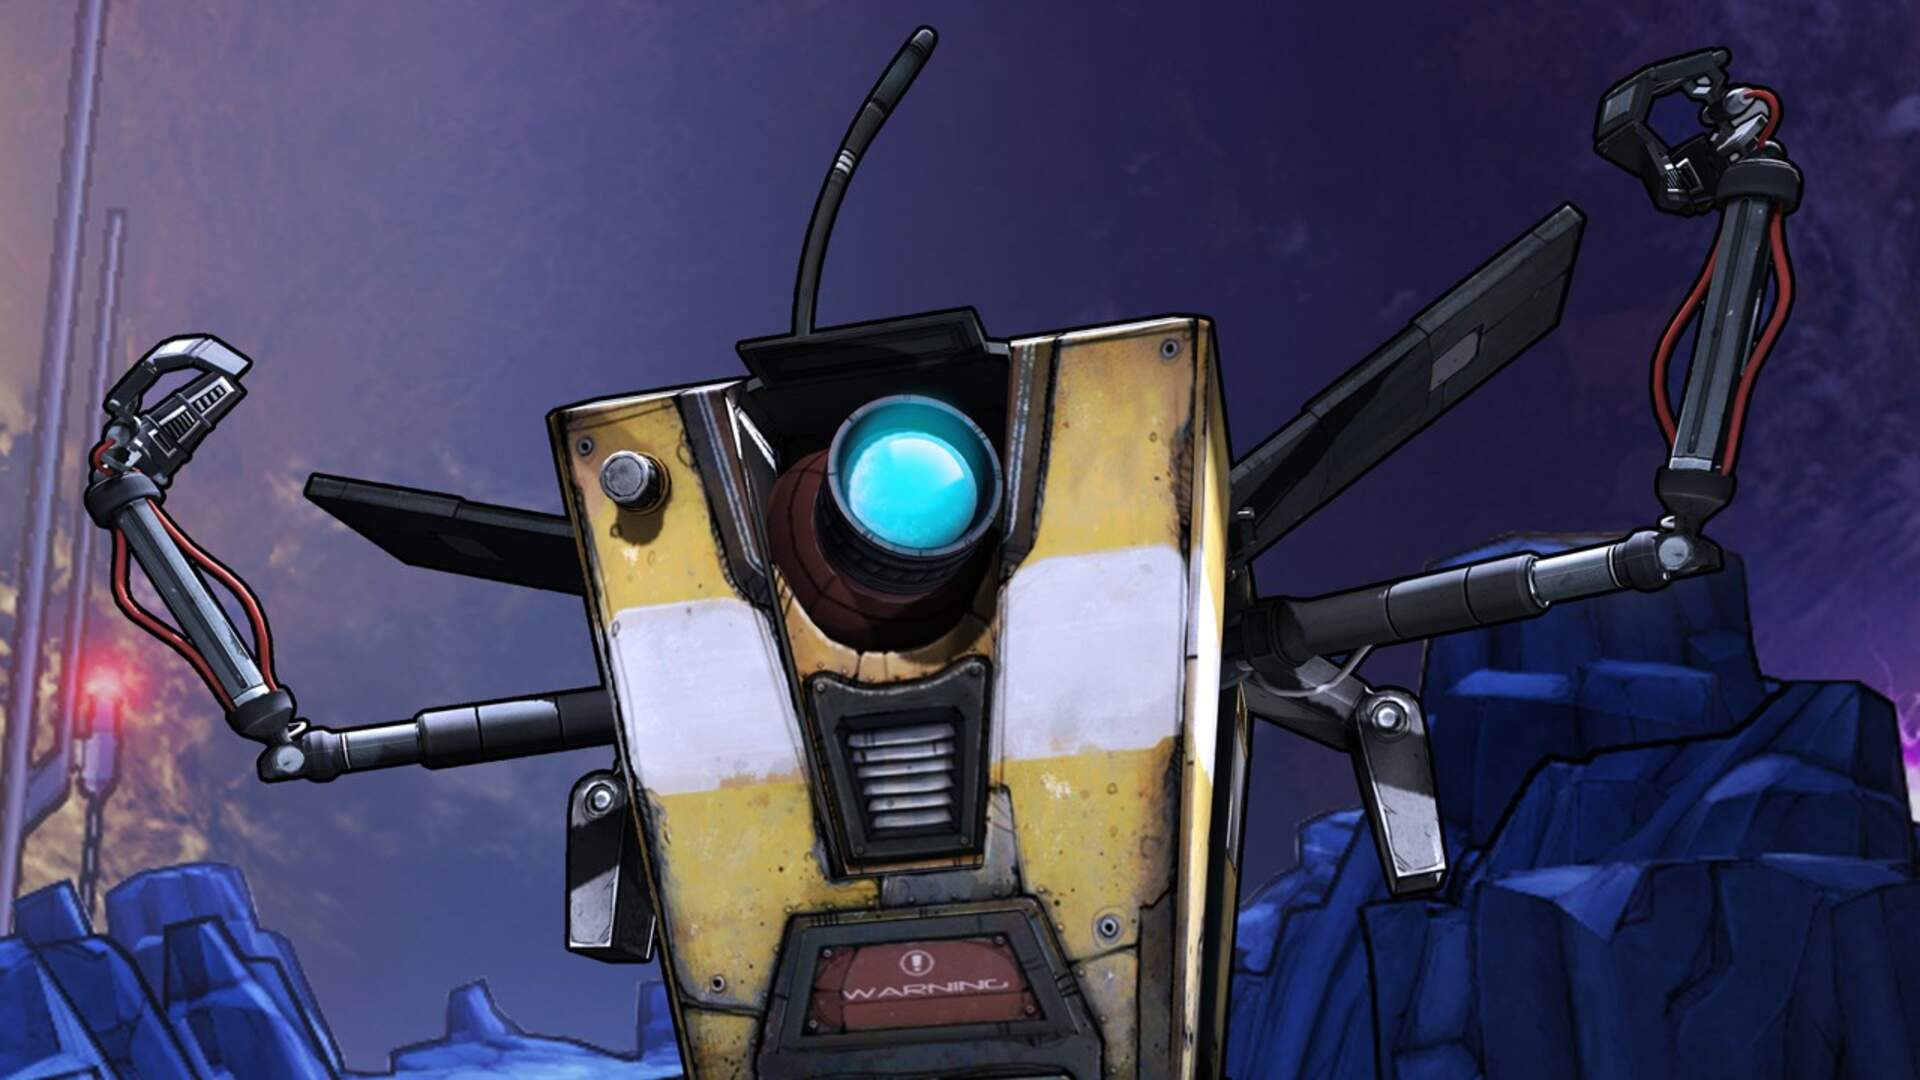 Borderlands 3 Coopetition Vs Cooperation - Which Should You Pick?